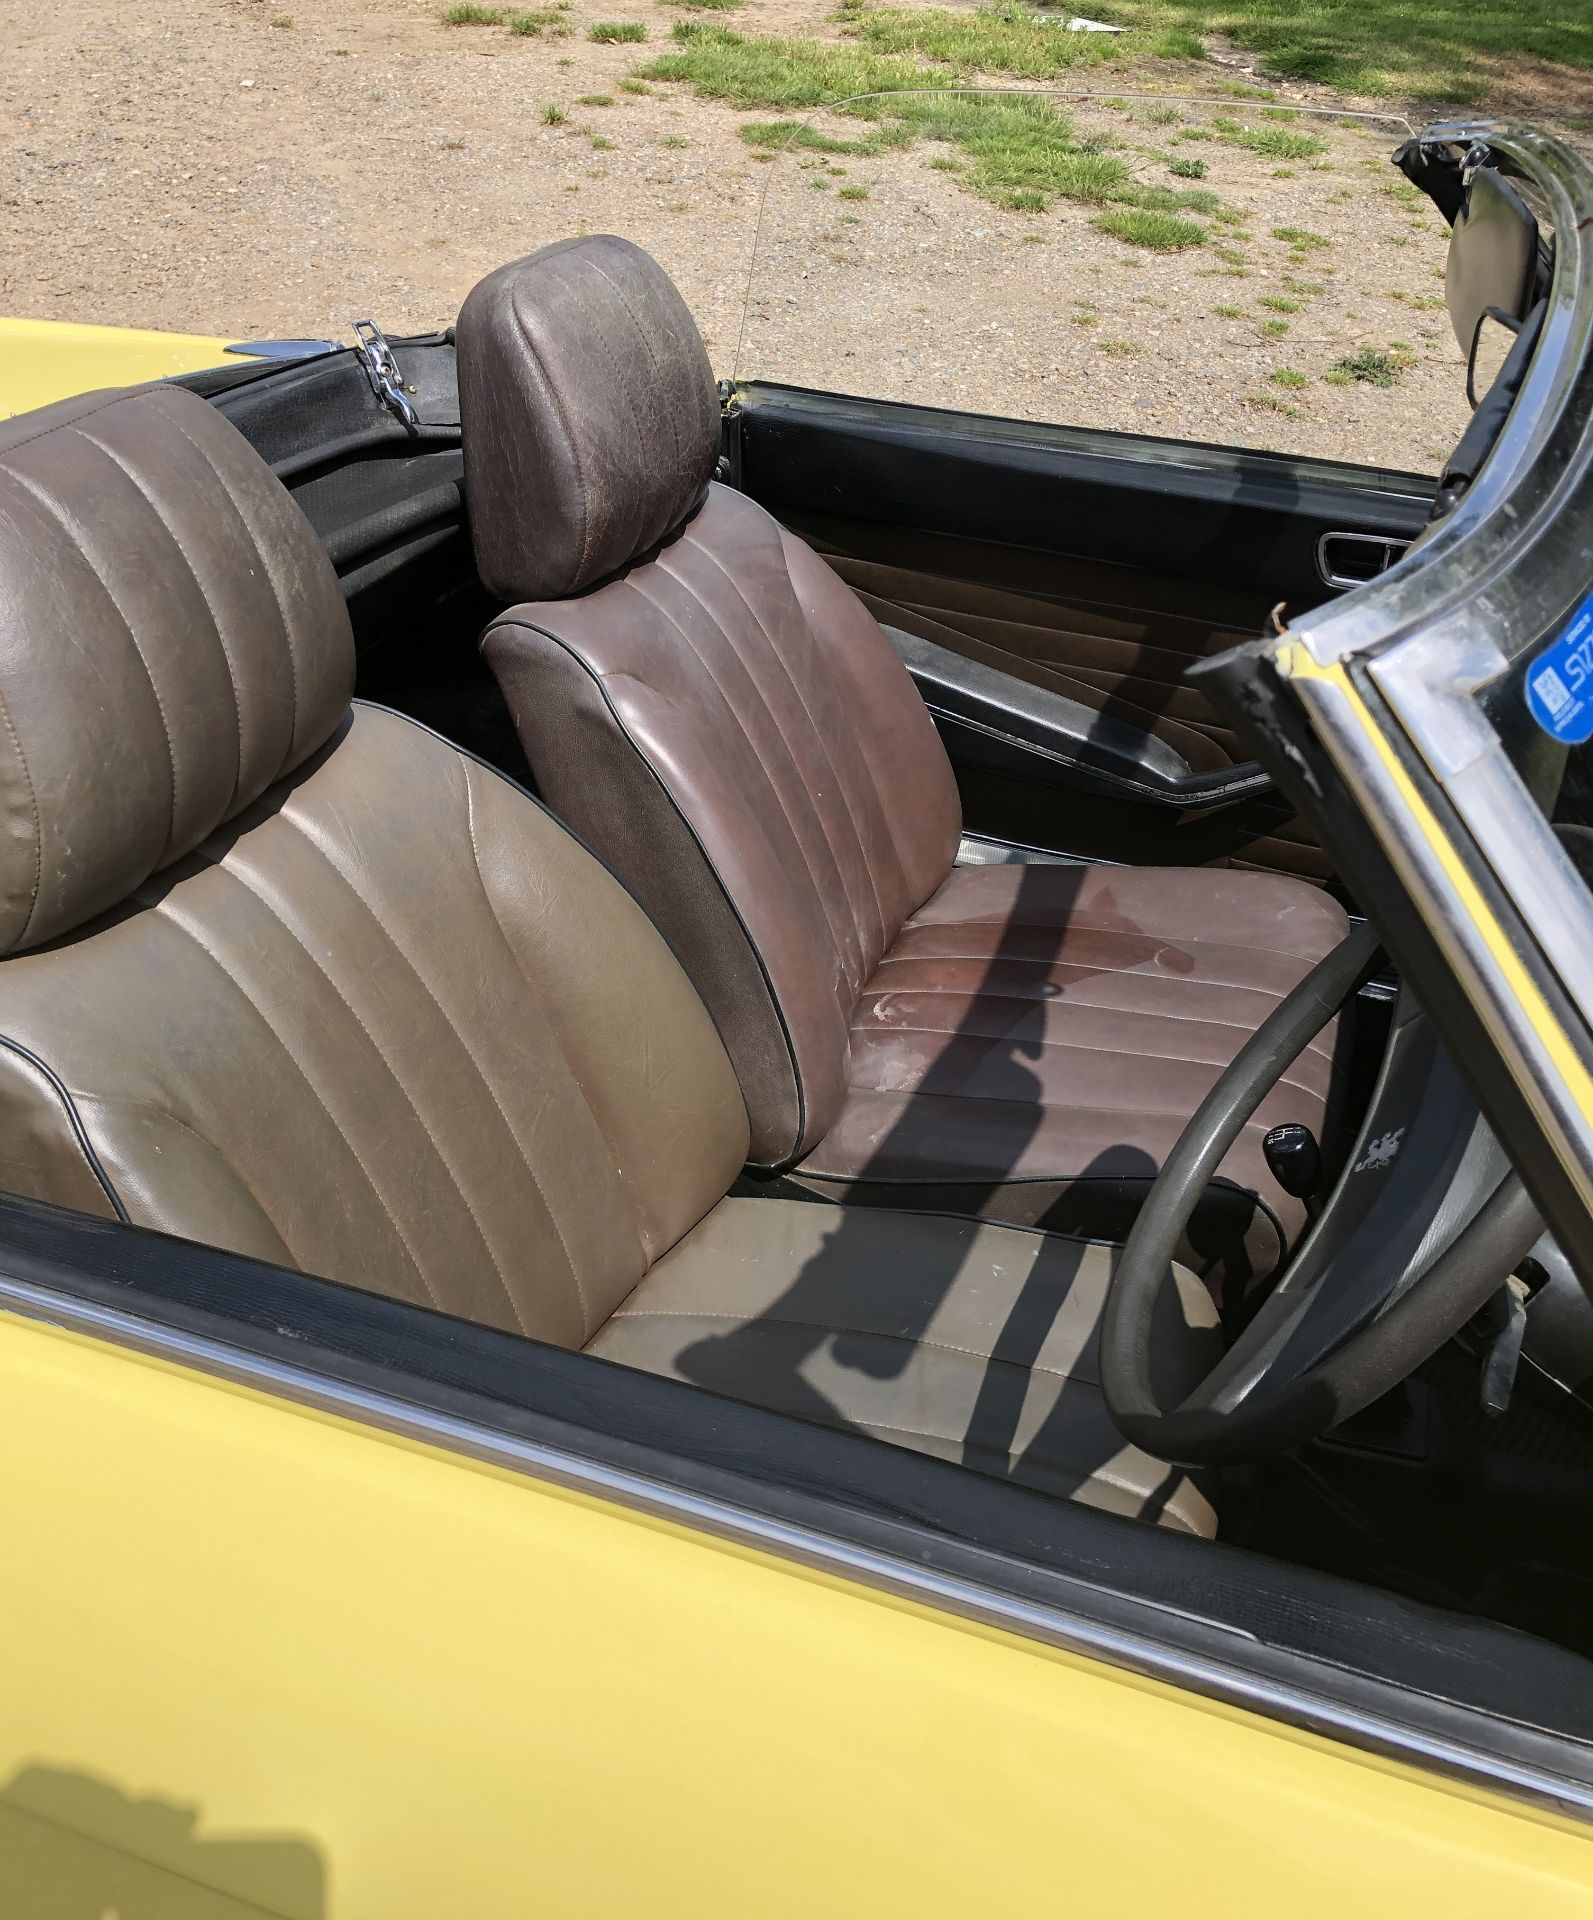 Rare Right Hand Drive Peugeot 304 Convertible, Registration OPC 913L, First Registered 2nd - Image 26 of 48